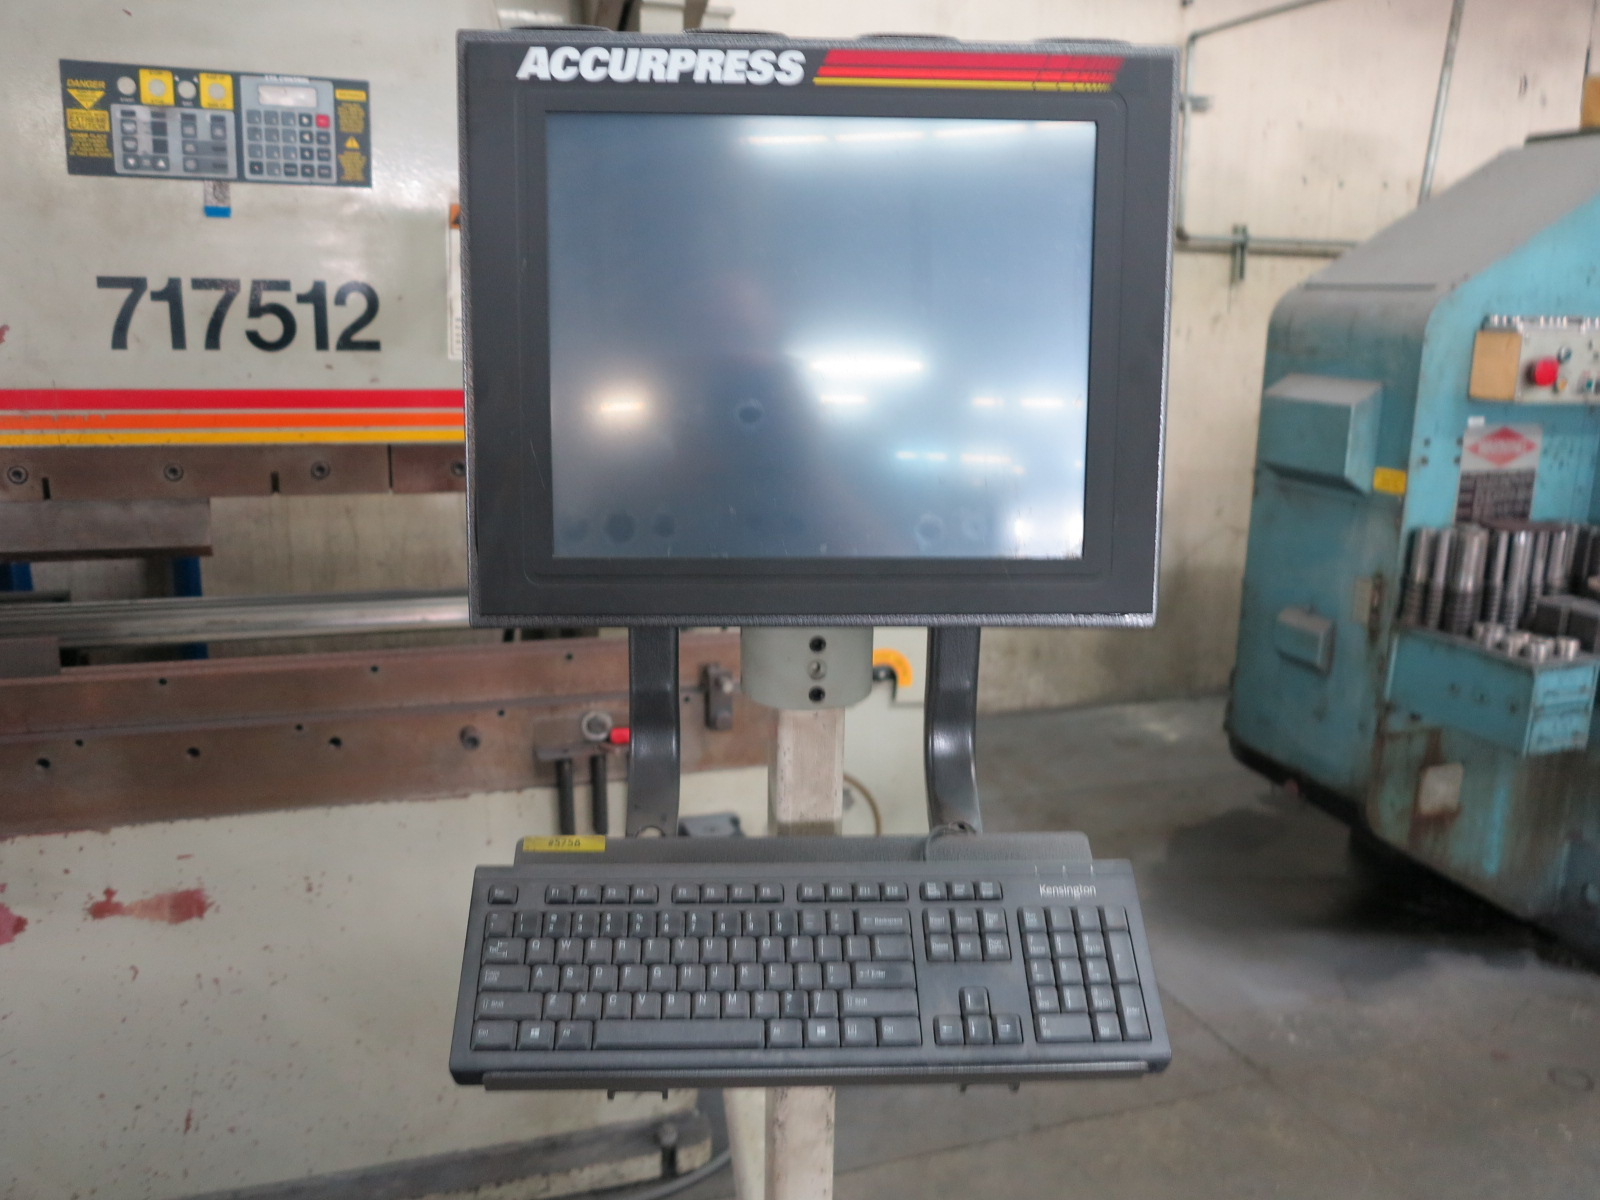 1999 ACCURPRESS BRAKE, MODEL 7017512, 175-TON X 12', E&S CONTROL, CNC BACKGAUGE, SUPPORTS, S/N 5758 - Image 3 of 7